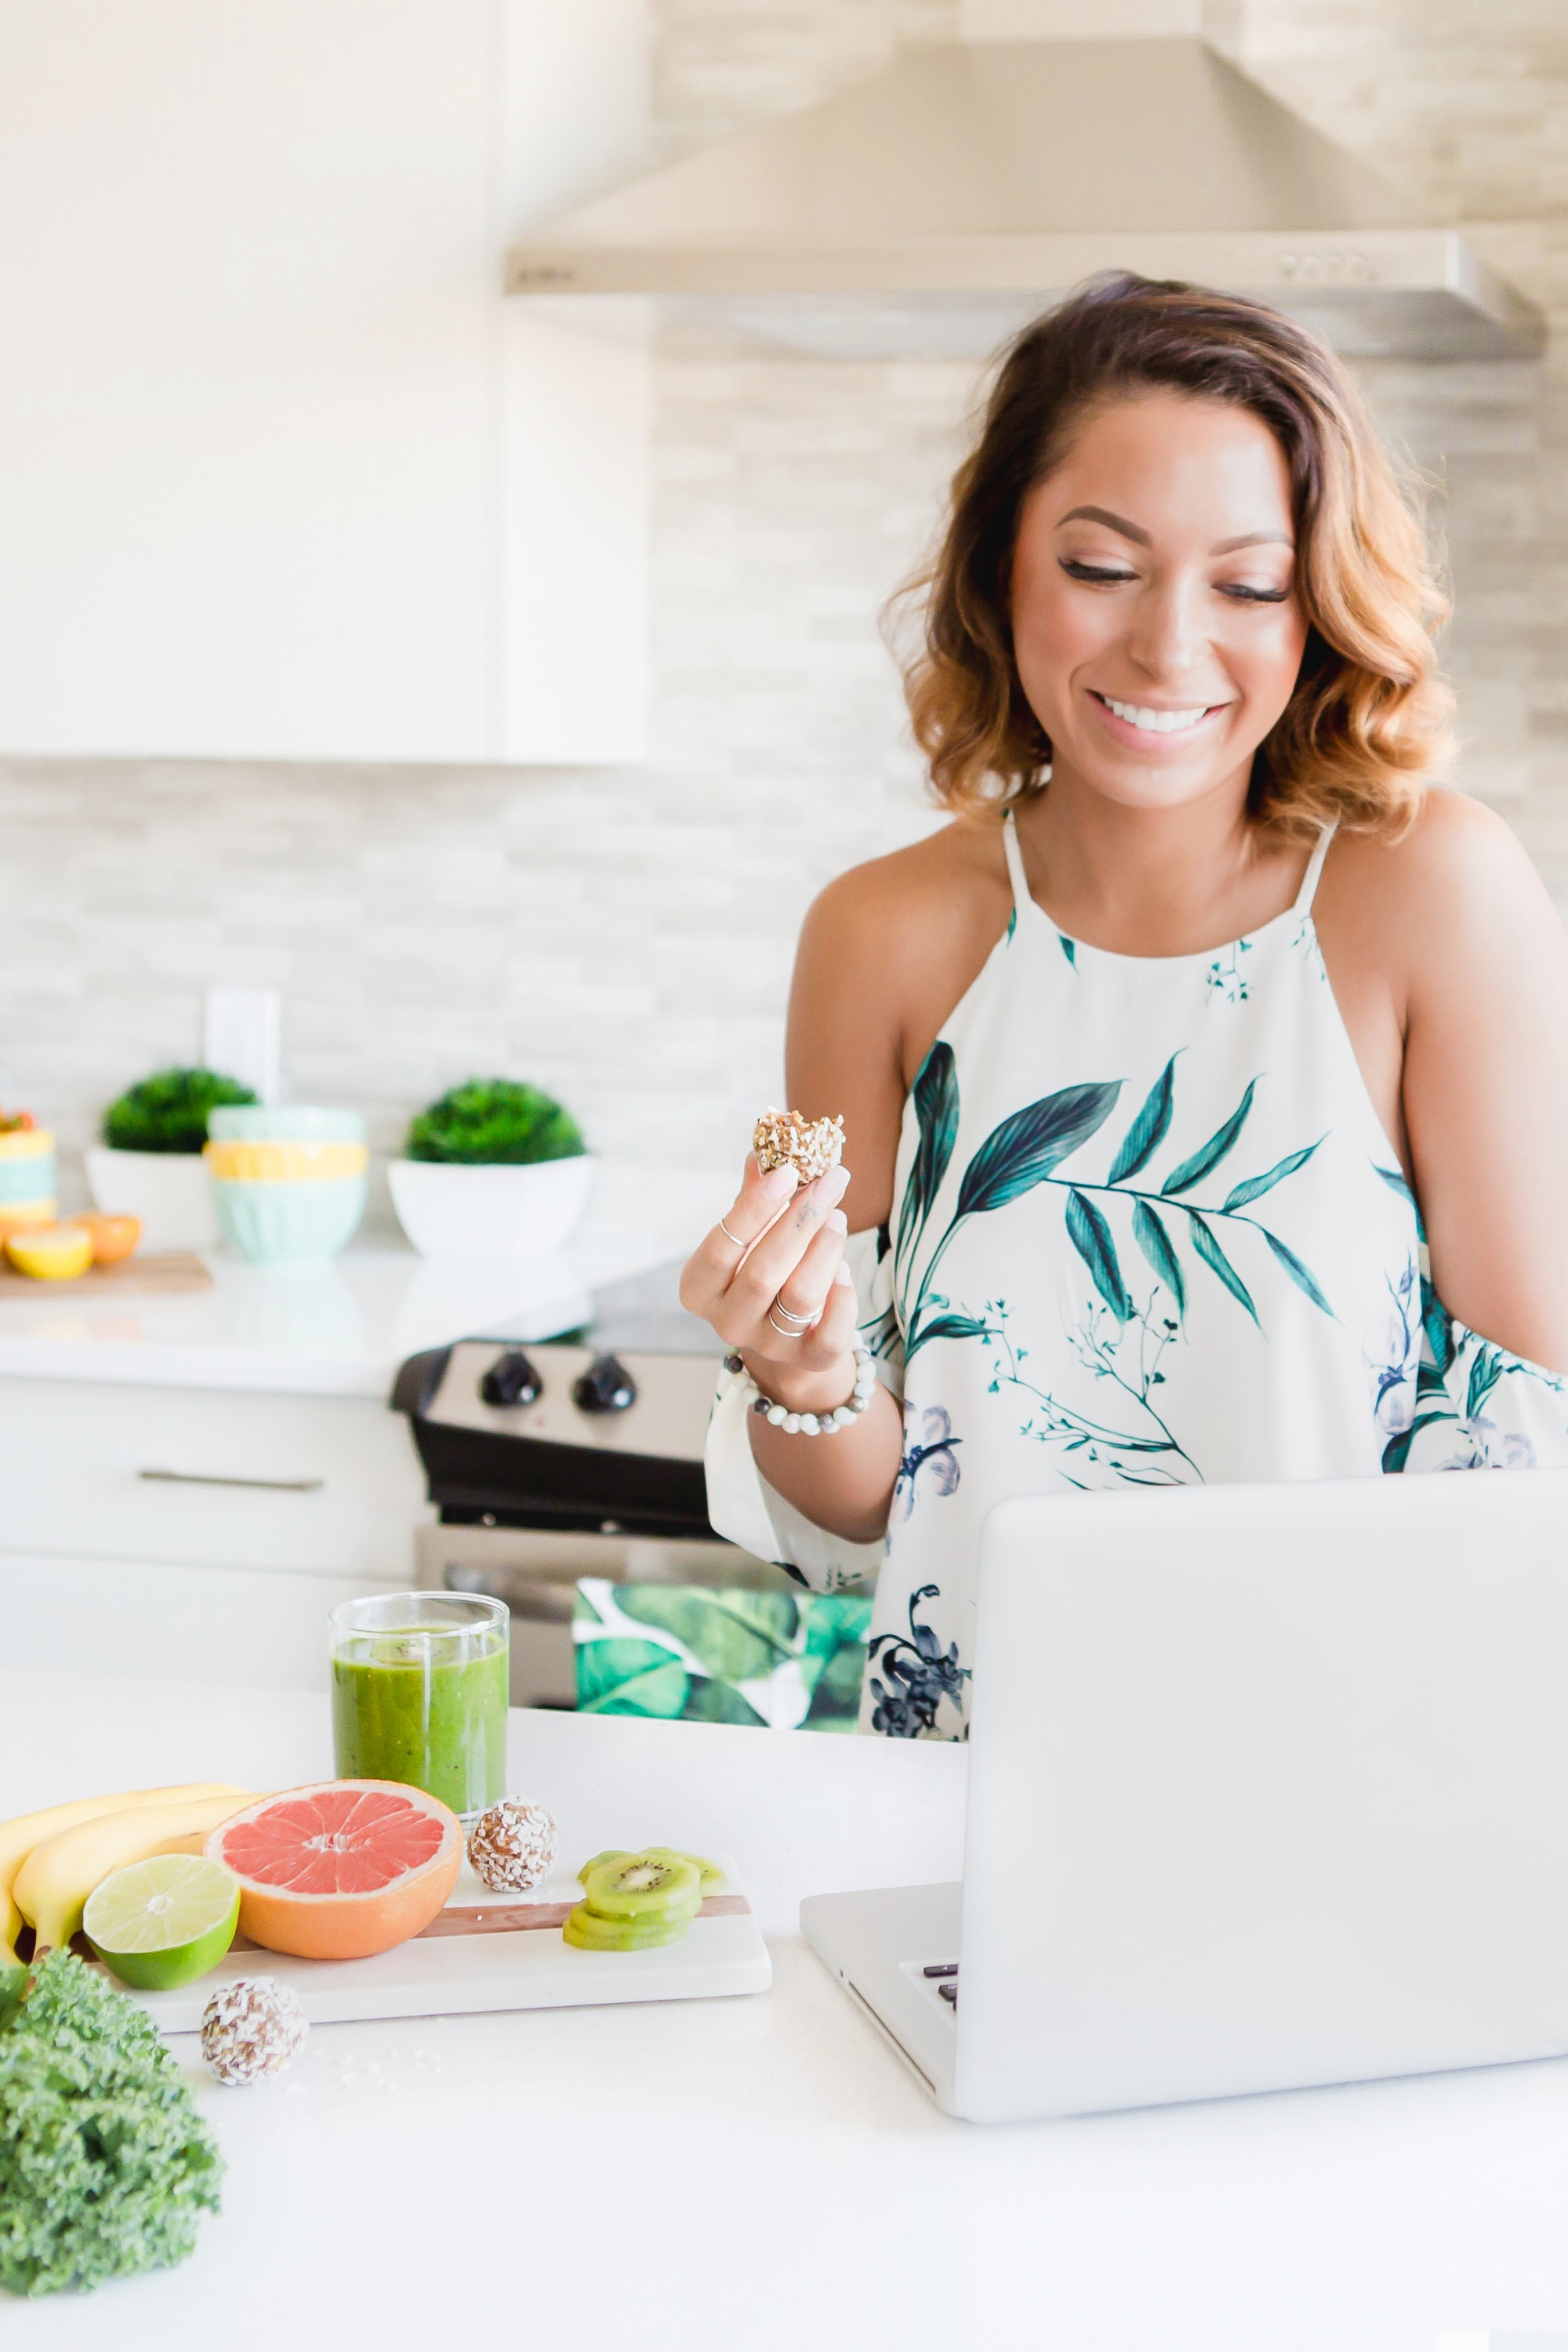 intermittent fasting and intuitive fasting, Bobbed woman with green smoothie at computer in white kitchen